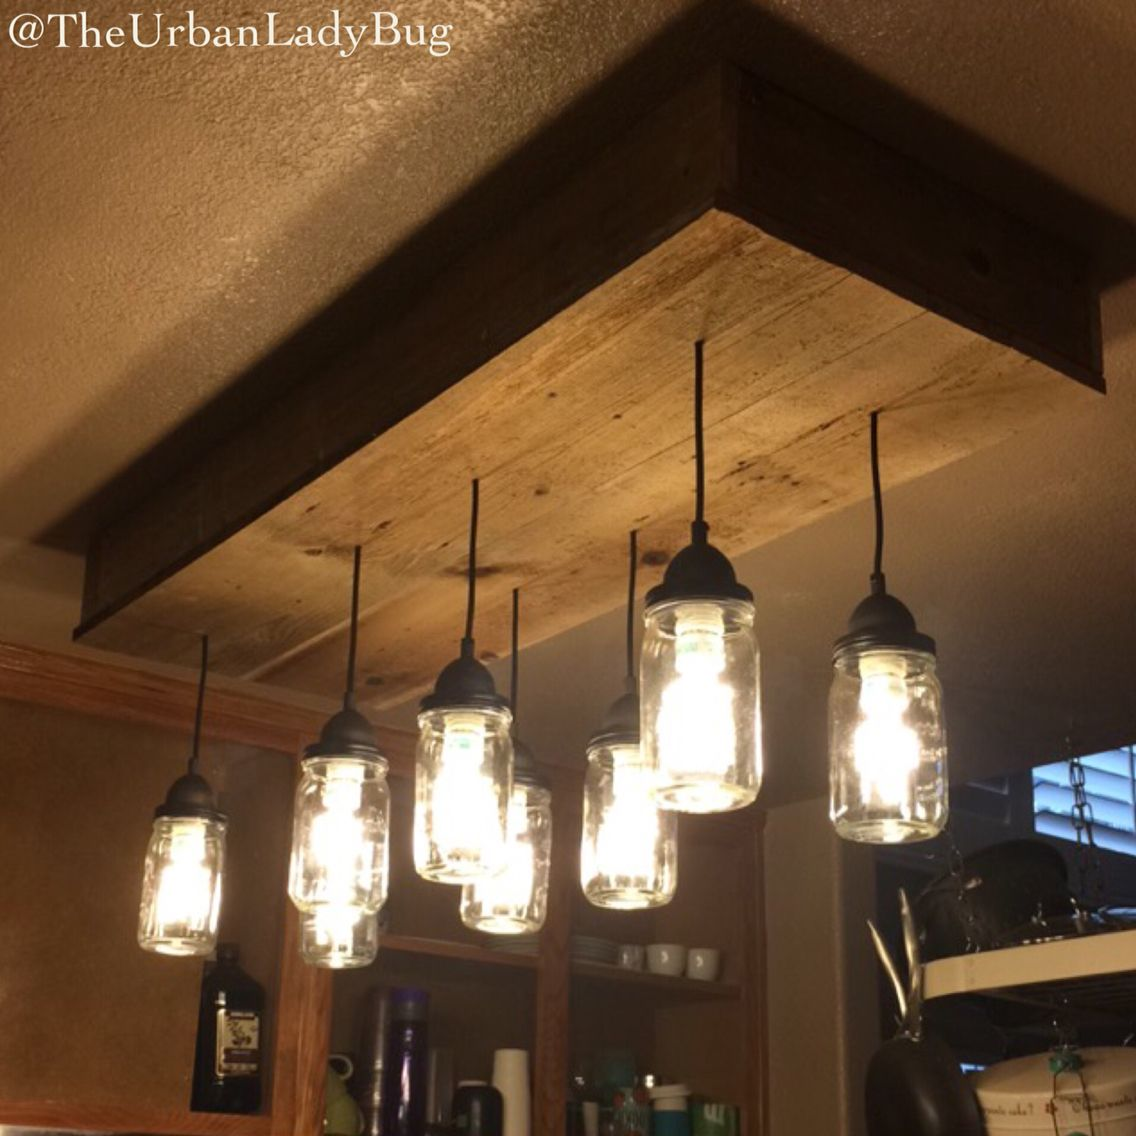 How to make a mason jar chandelier diy light fences and ceilings how to make a mason jar chandelier arubaitofo Image collections